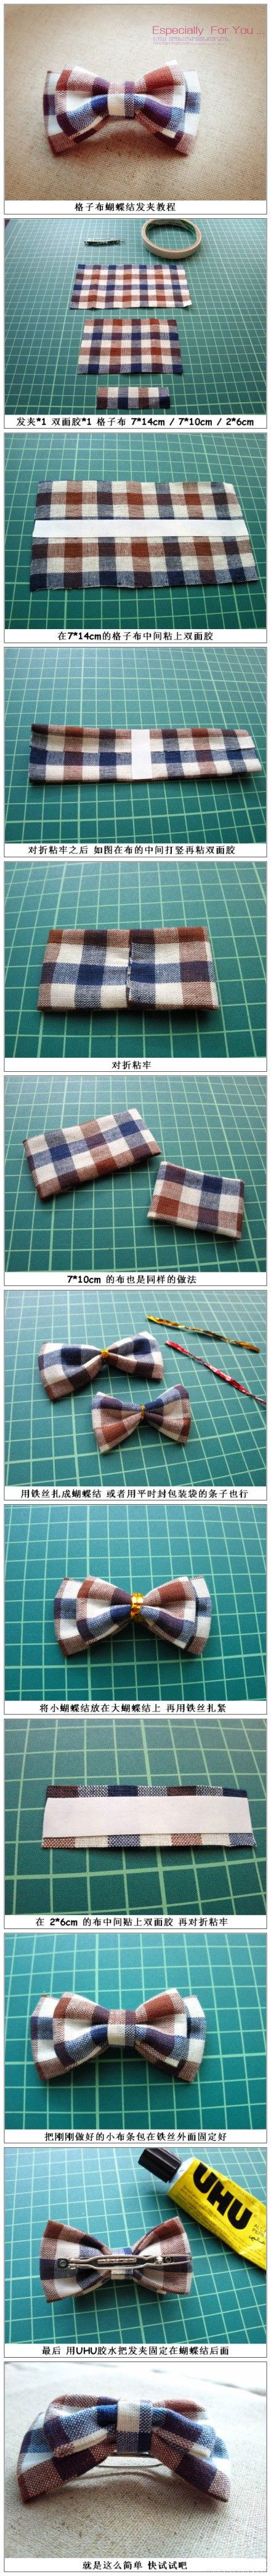 bow tie diy | Raddest Men's Fashion Looks On The Internet: http://www.raddestlooks.org